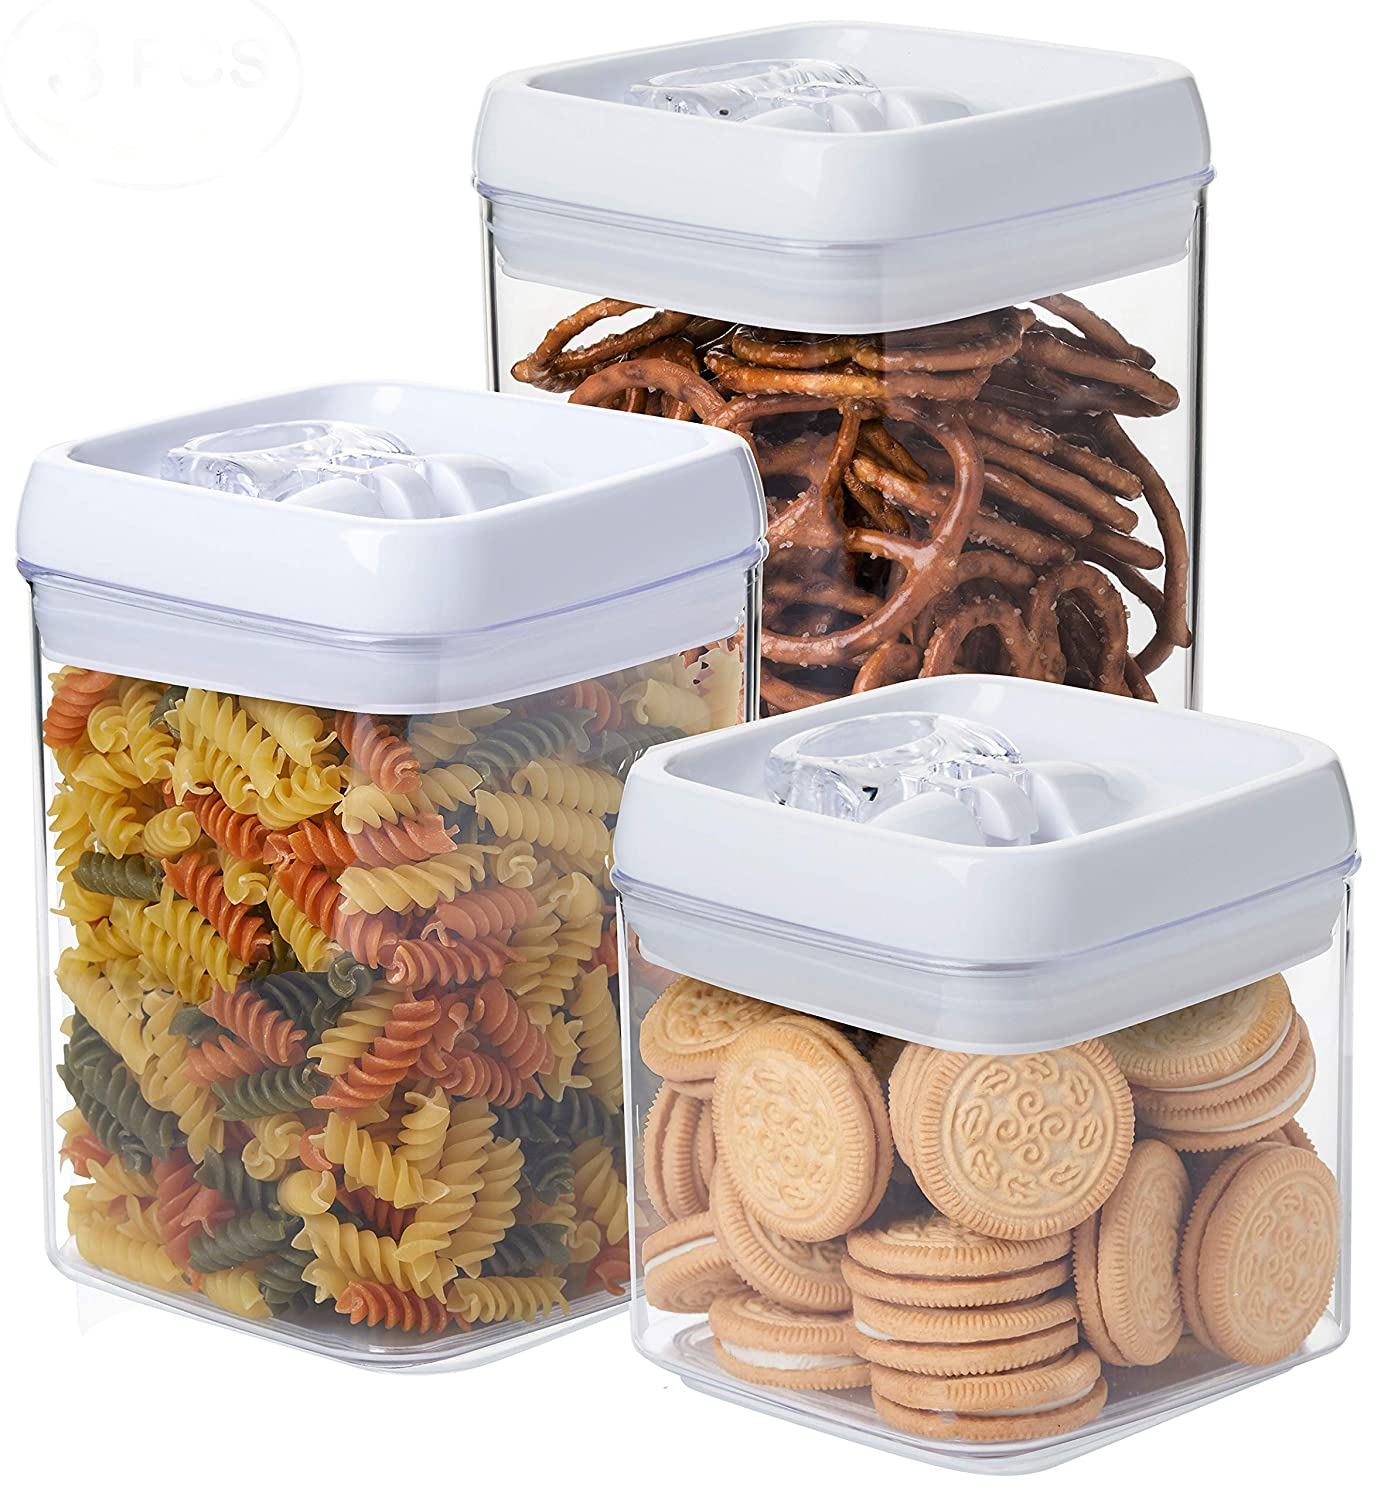 Guru Products Set Large Capacity Clear Food Containers w Black Airtight Lids Canisters for Kitchen and Pantry Storages - Storage for Cereal, Flour, Cooking - BPA-Free Plastic (White, 1pc)